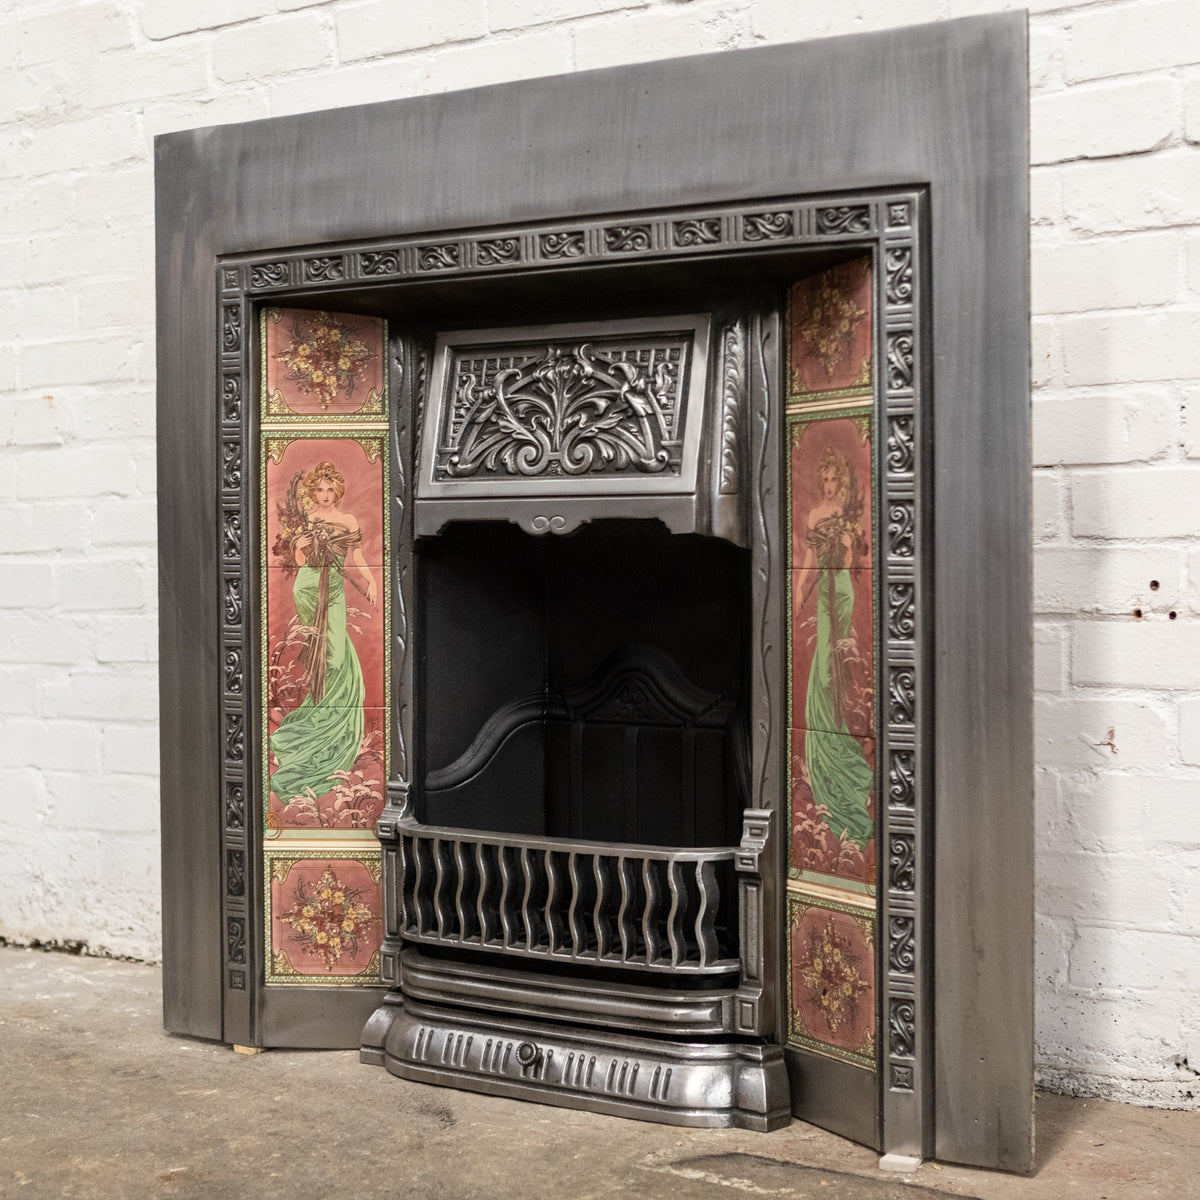 Reclaimed Art Nouveau Polished Fireplace Insert with Tiles | The Architectural Forum